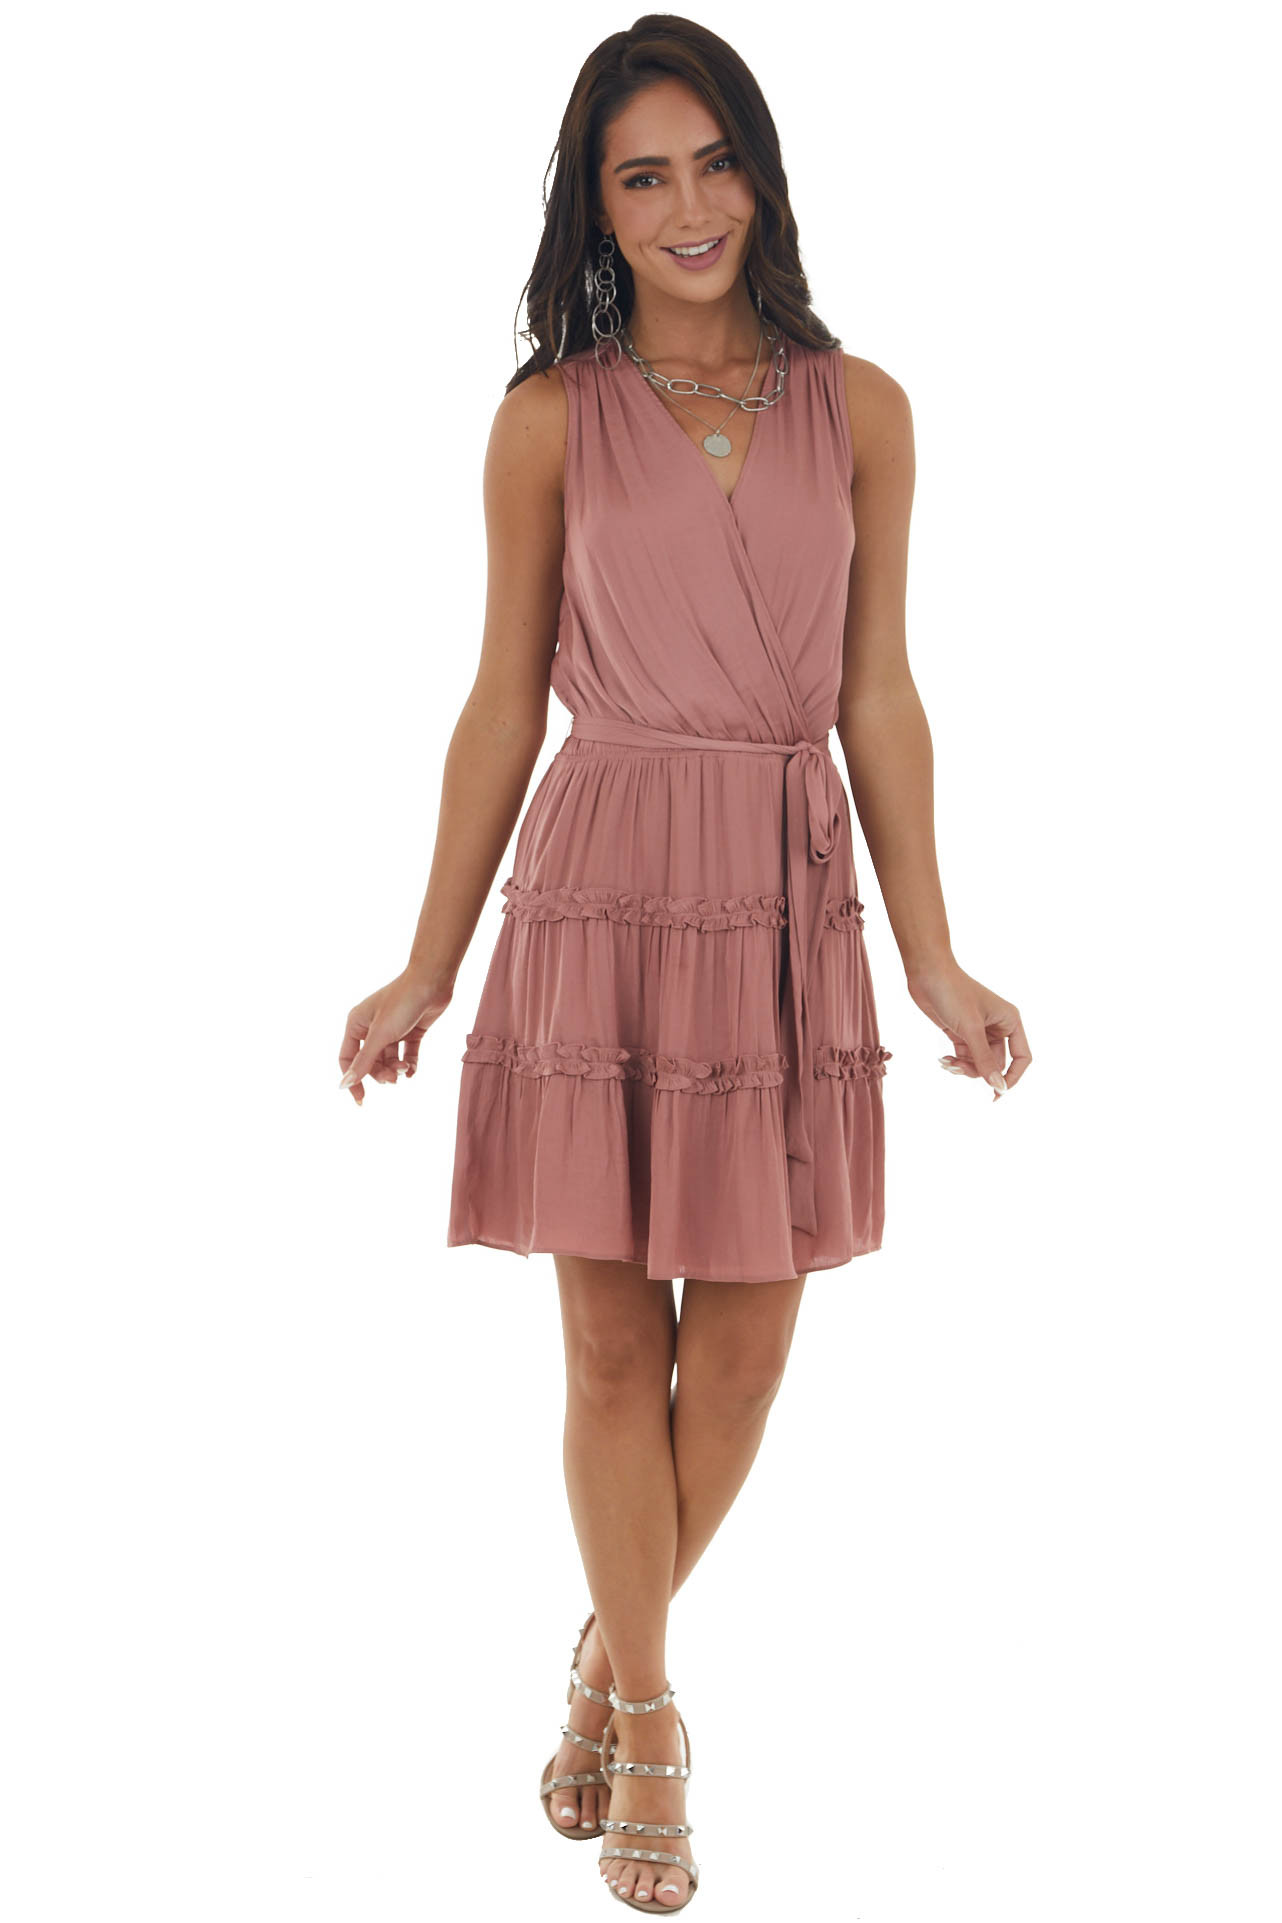 Vintage Rose Surplice Silky Dress with Frills